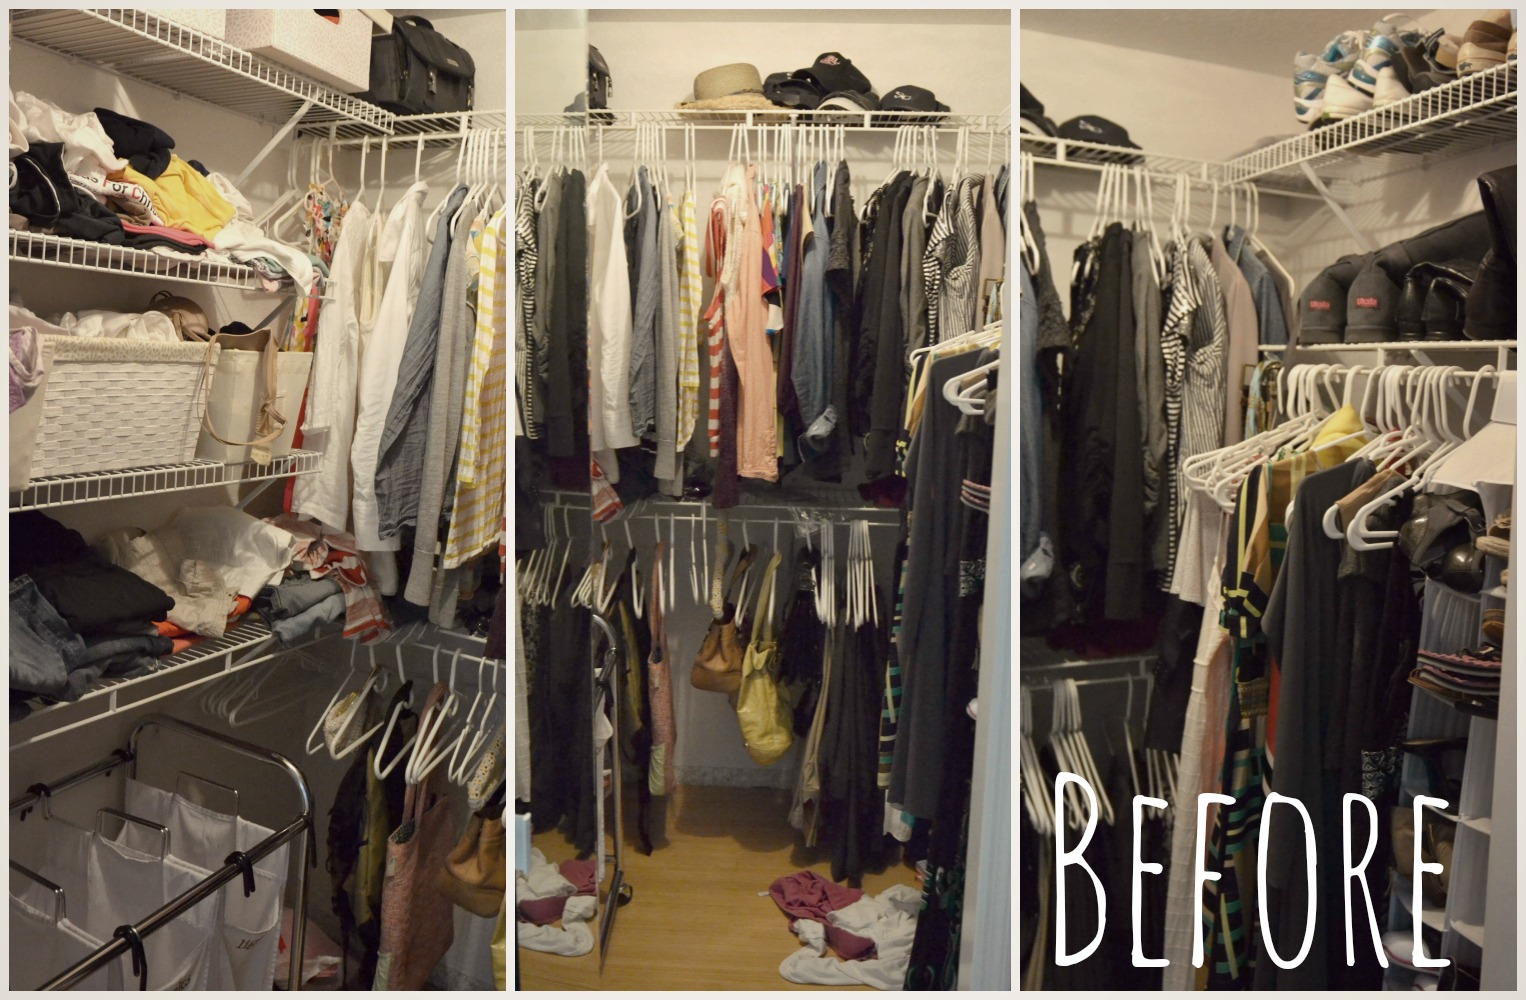 The 40 Hanger Closet Before The Purge Living Well